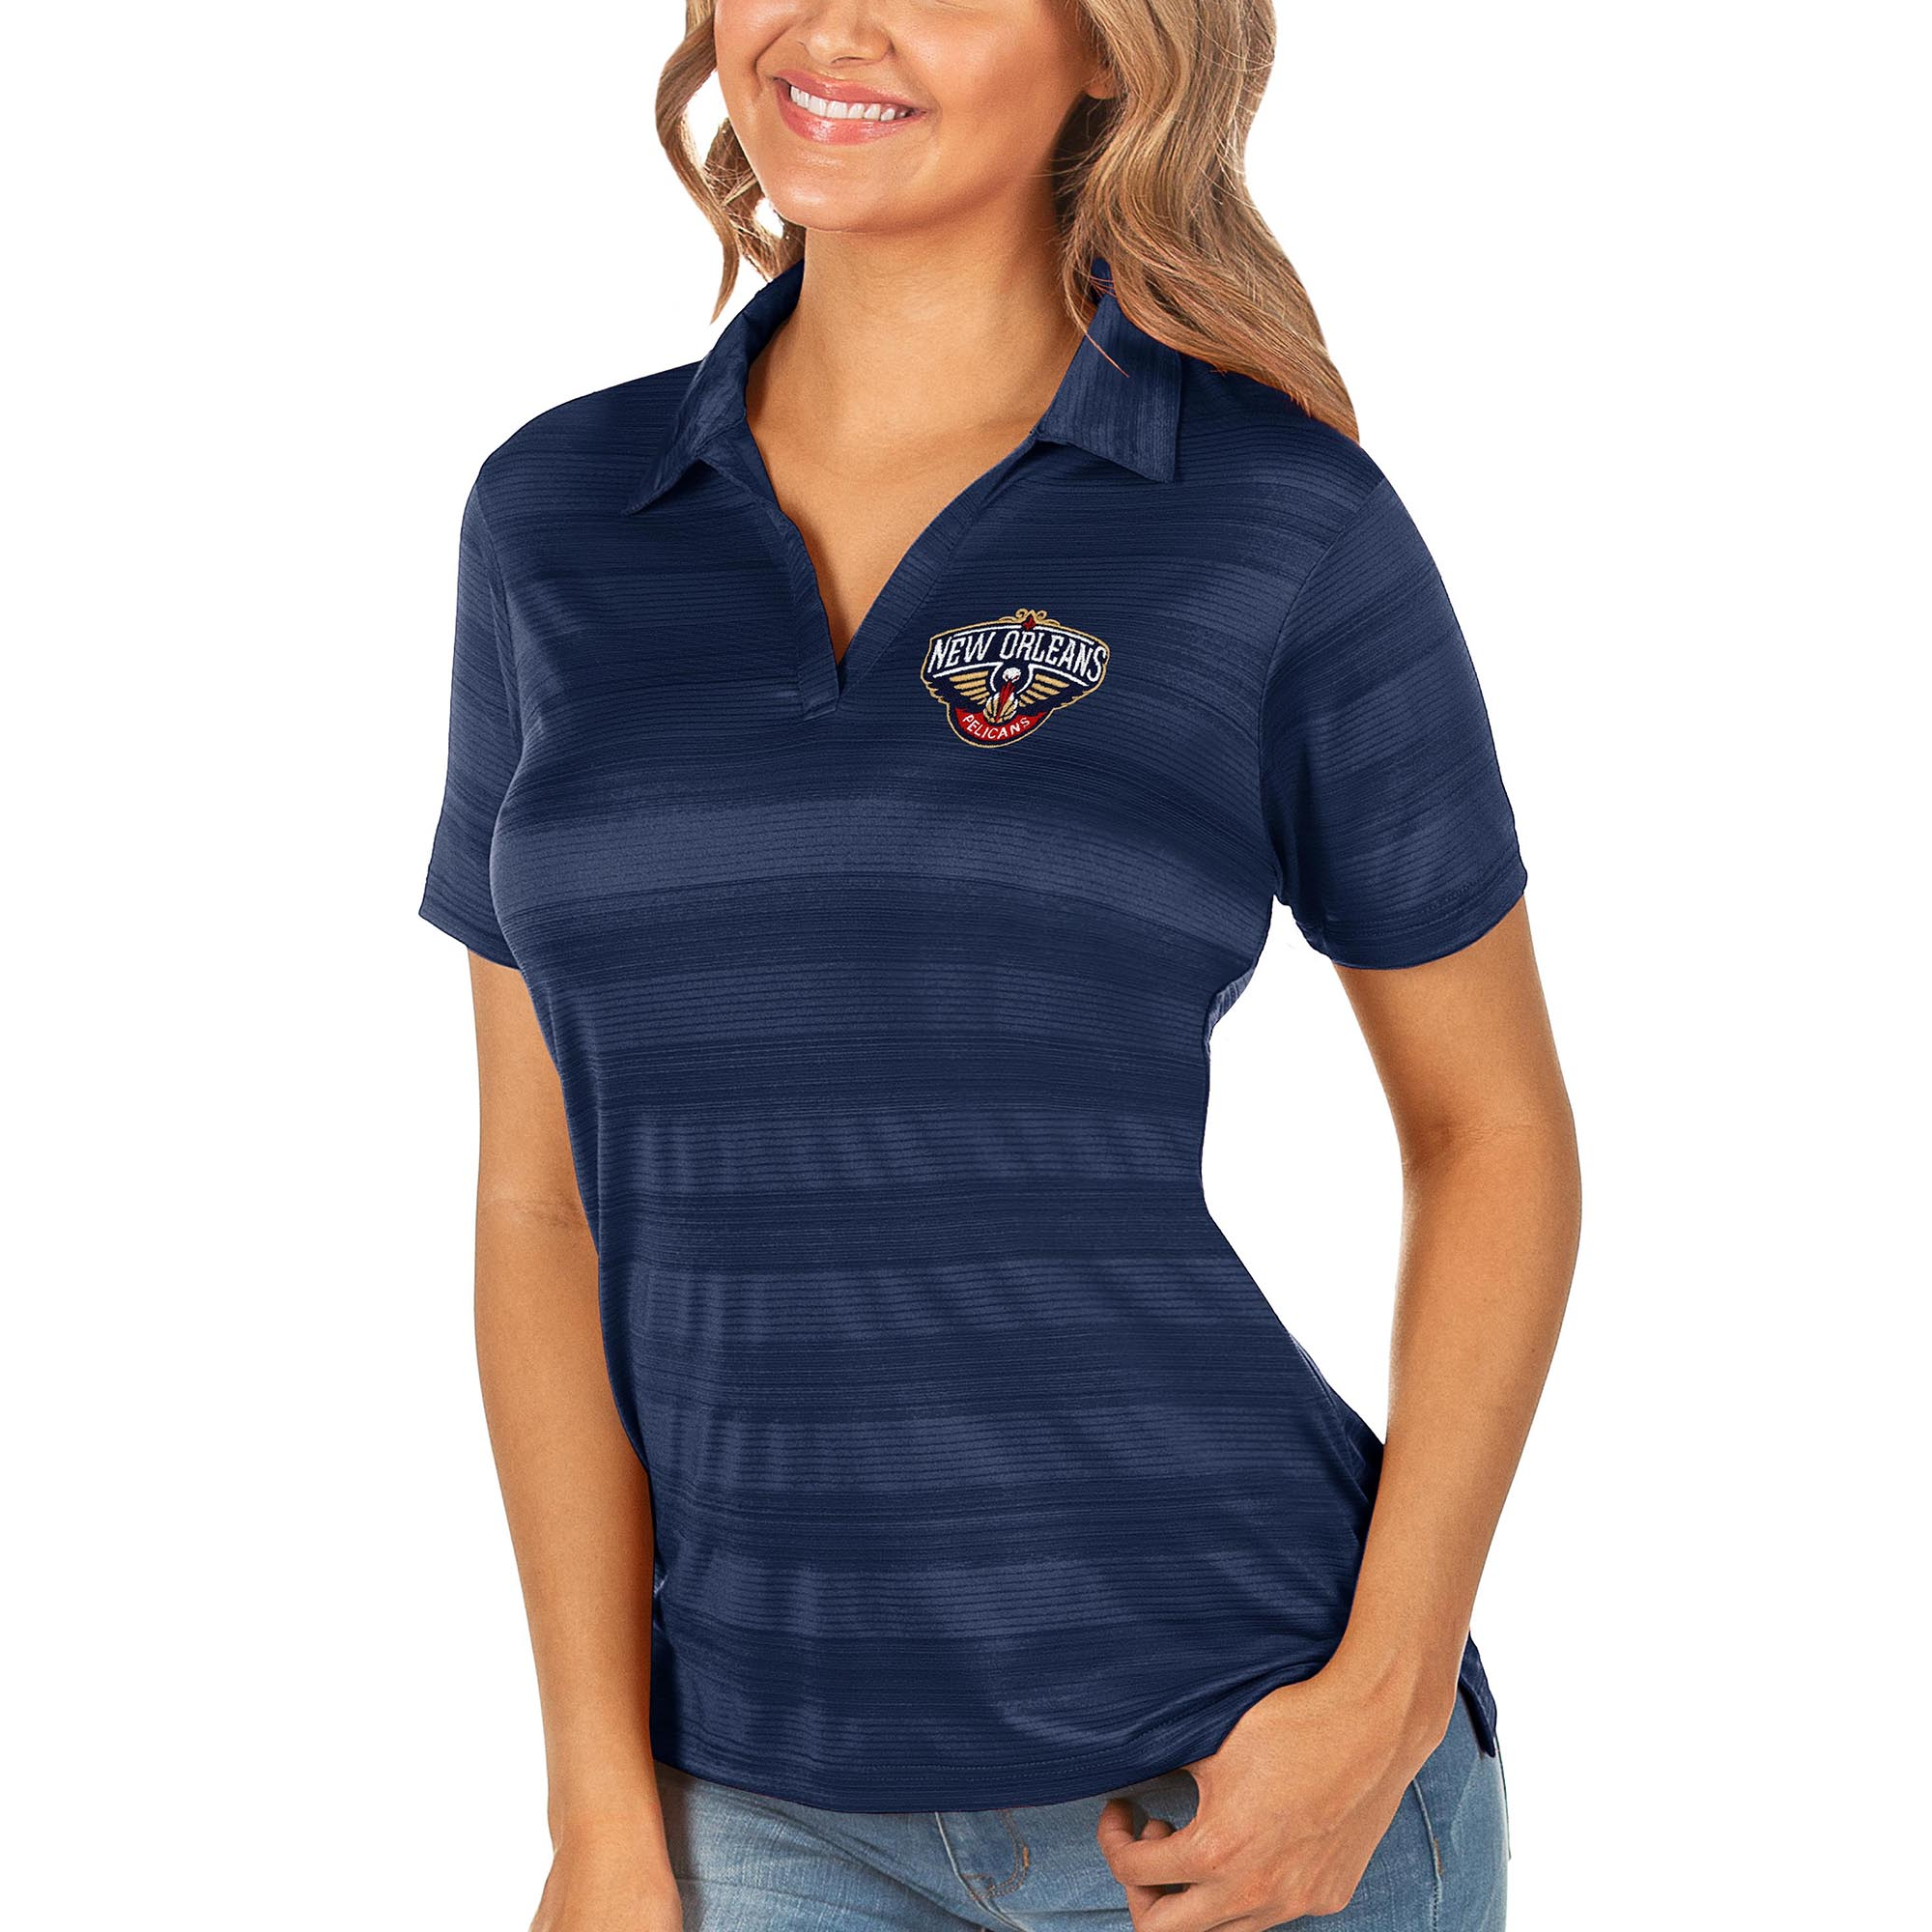 New Orleans Pelicans Antigua Women's Compass Polo - Navy